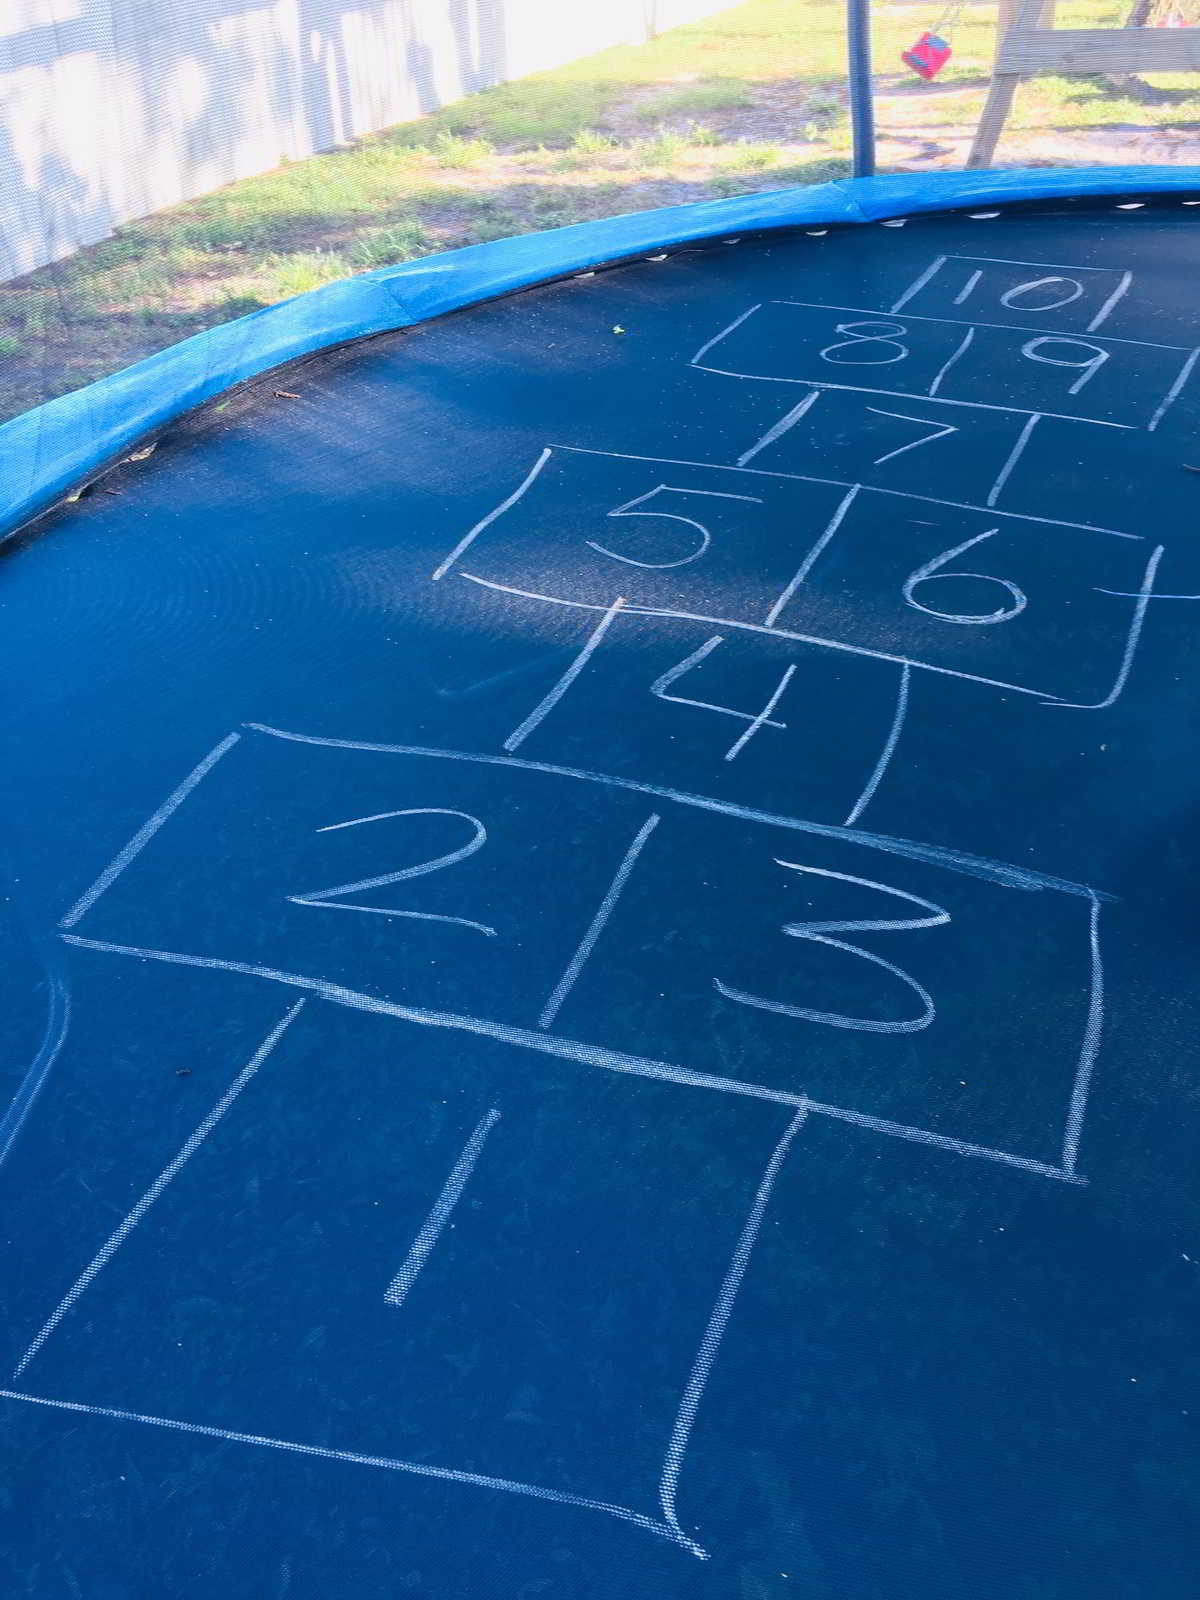 Setting up the trampoline hopscotch game for kids